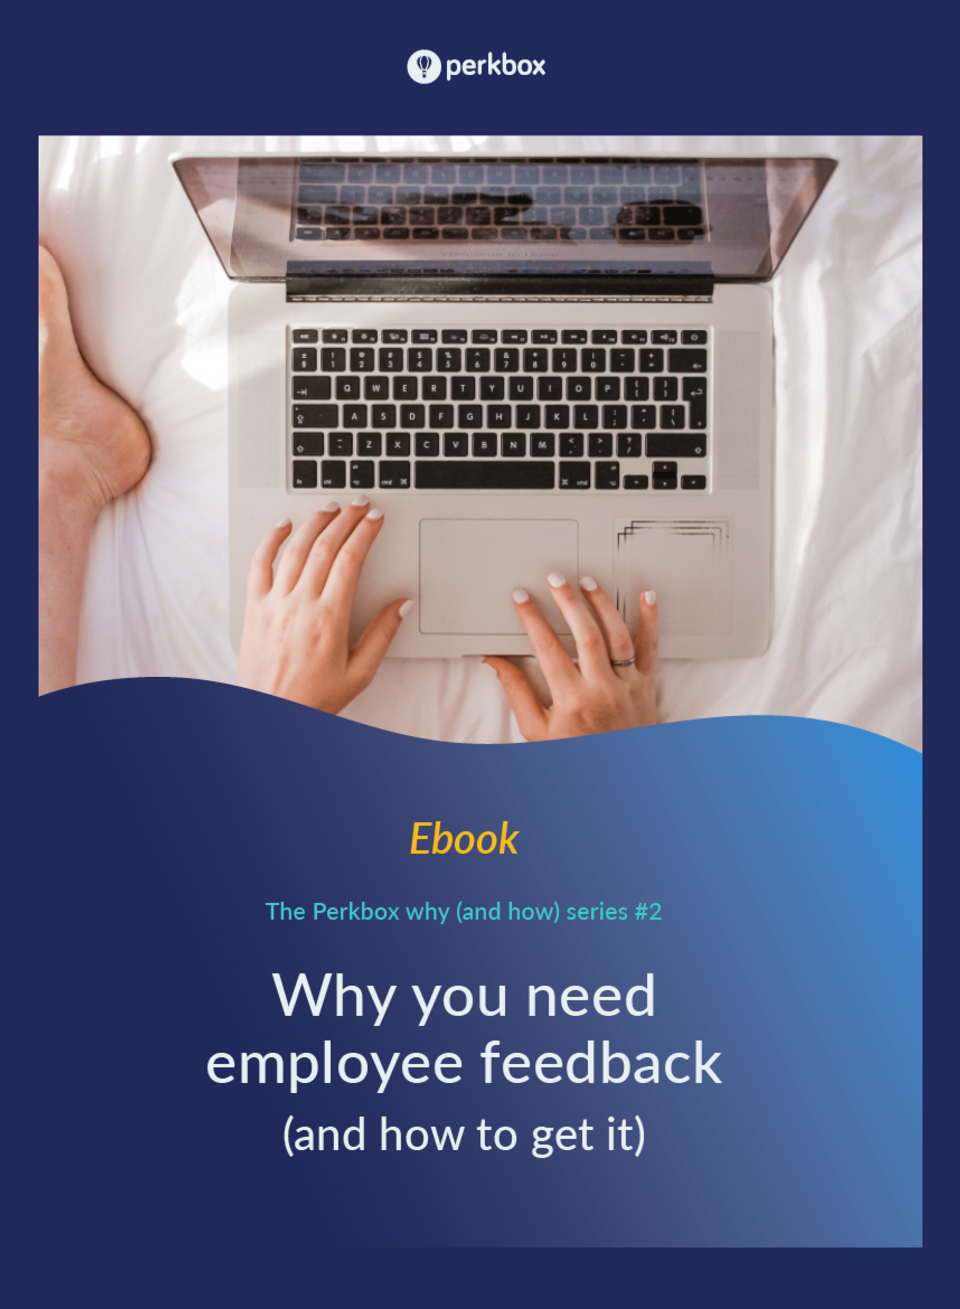 Why you need employee feedback (and how to get it)